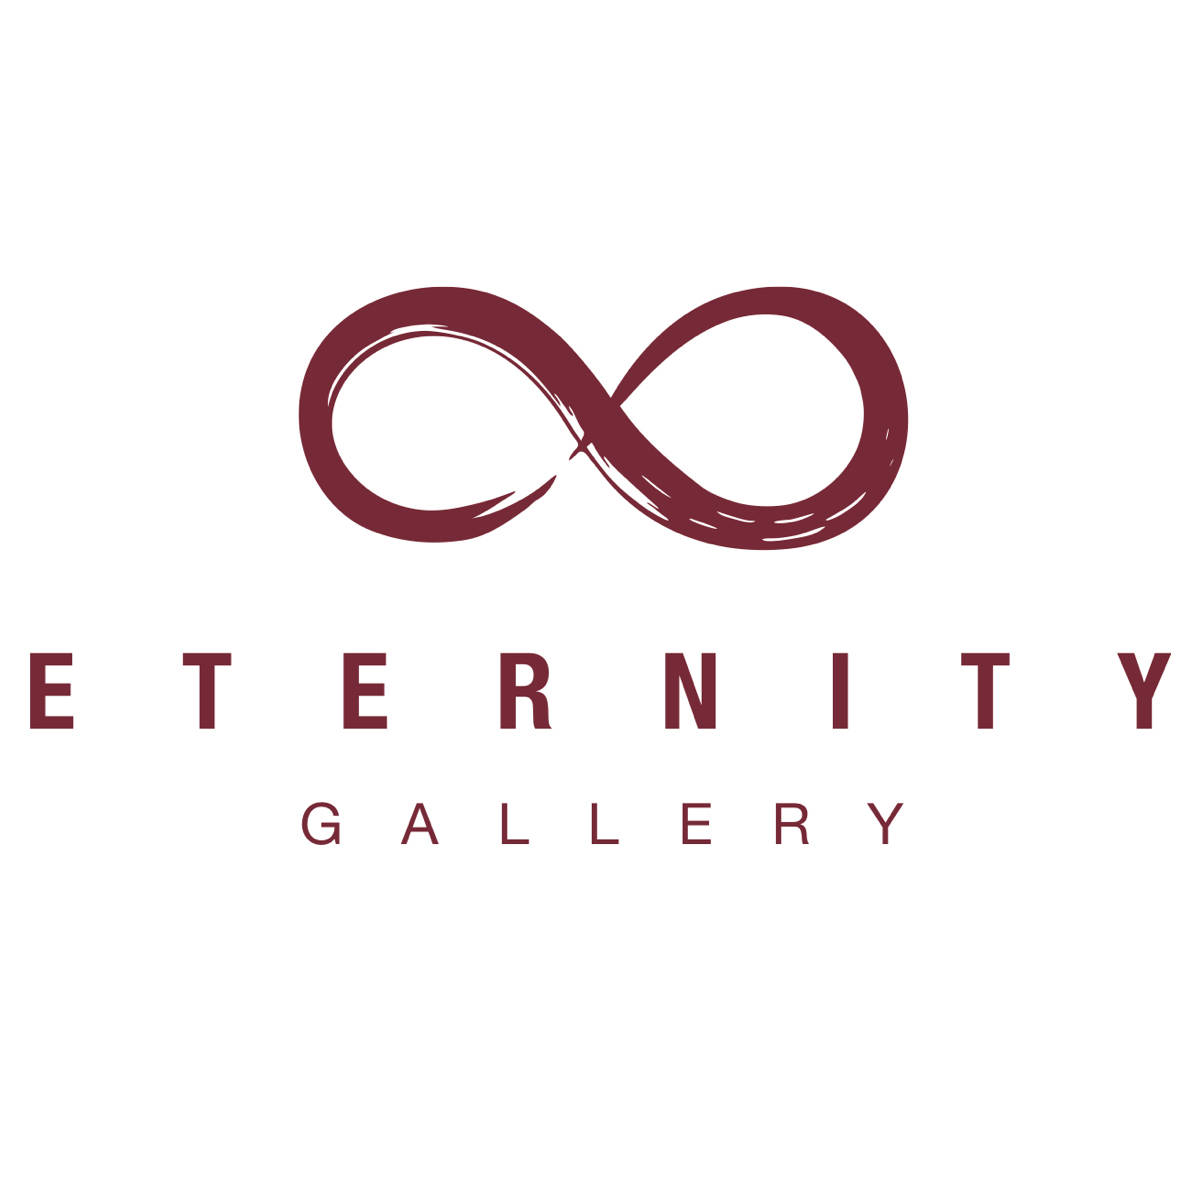 Eternity Gallery